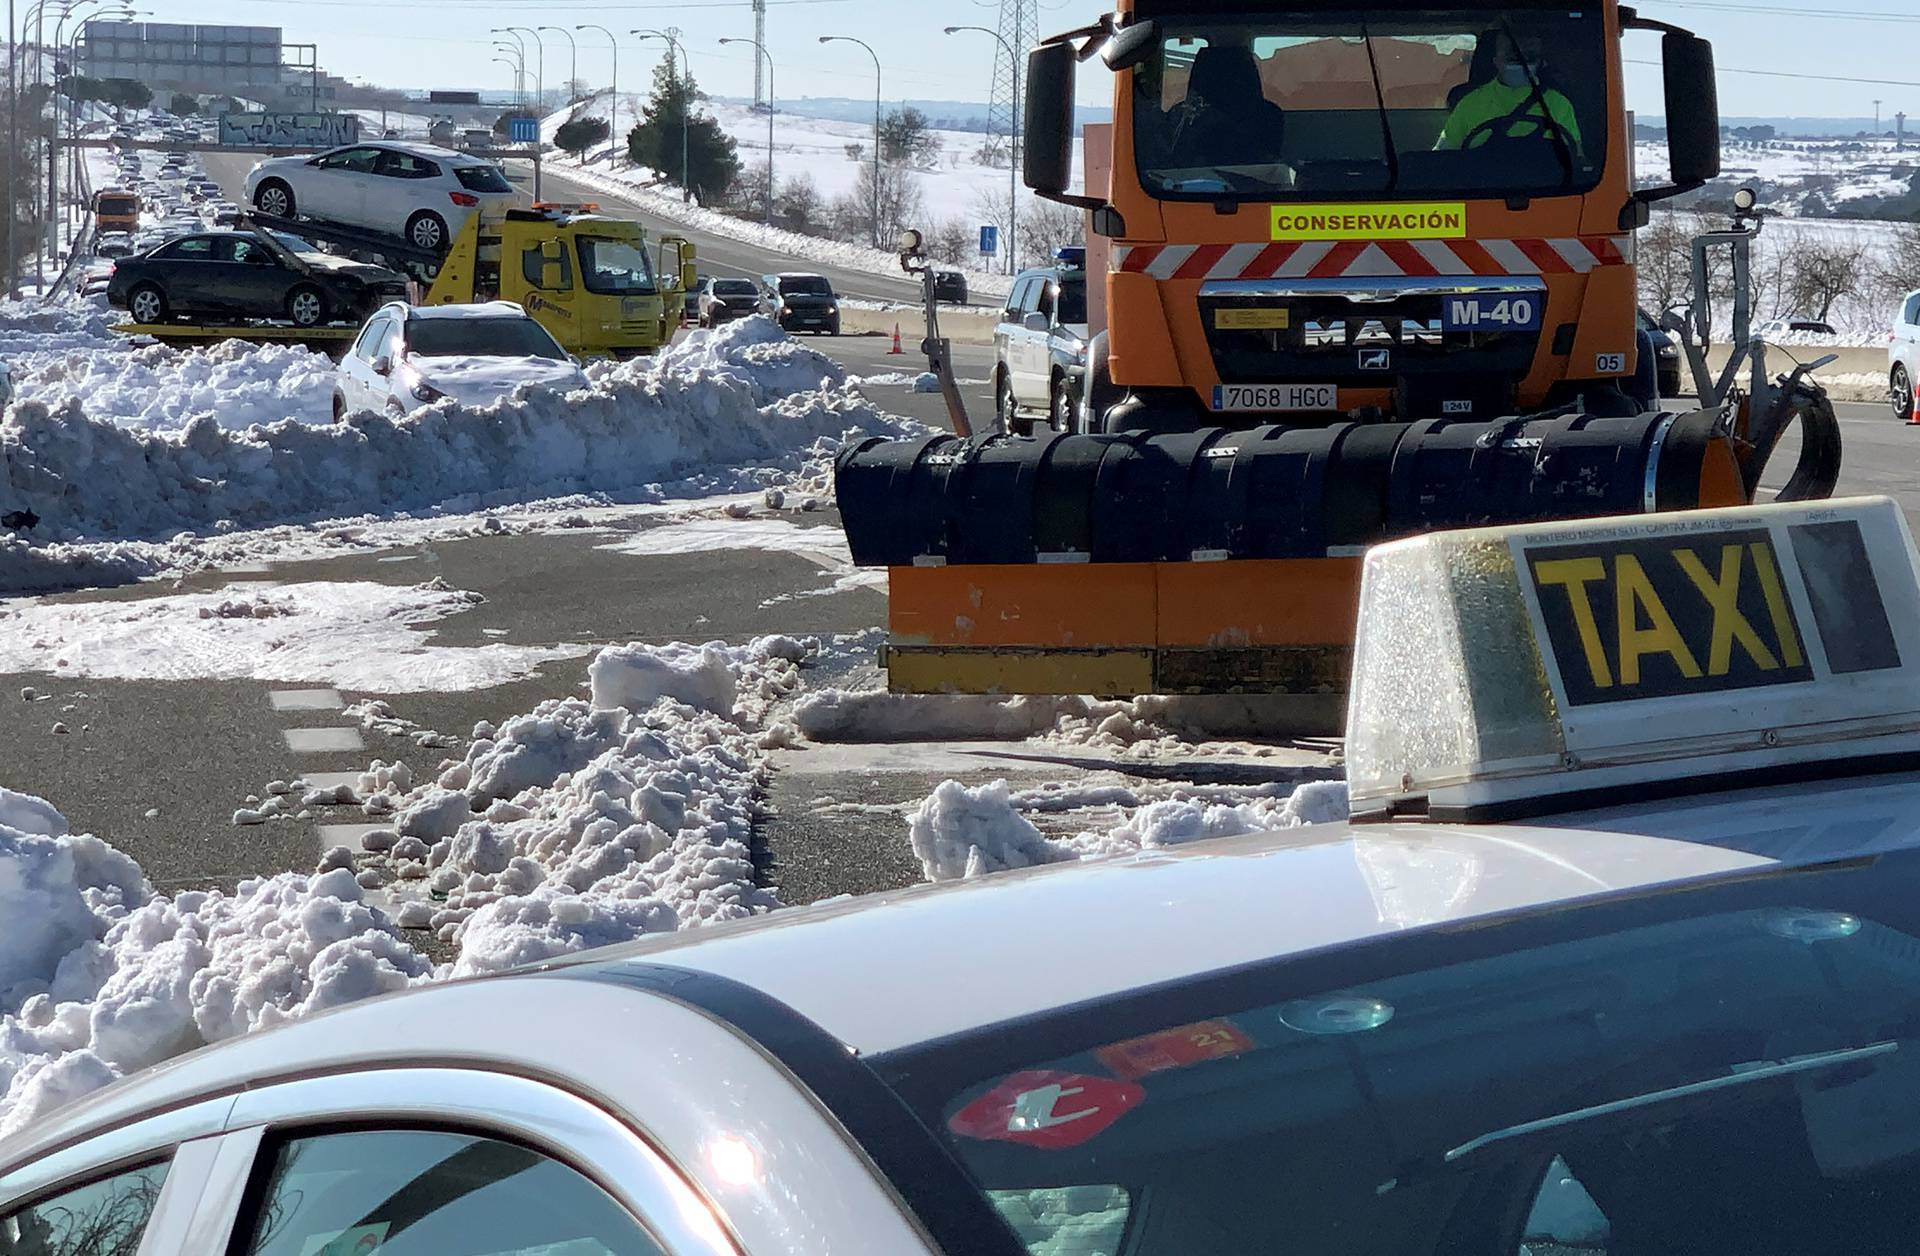 A taxi is towed on M-40 highway after heavy snowfall in Madrid